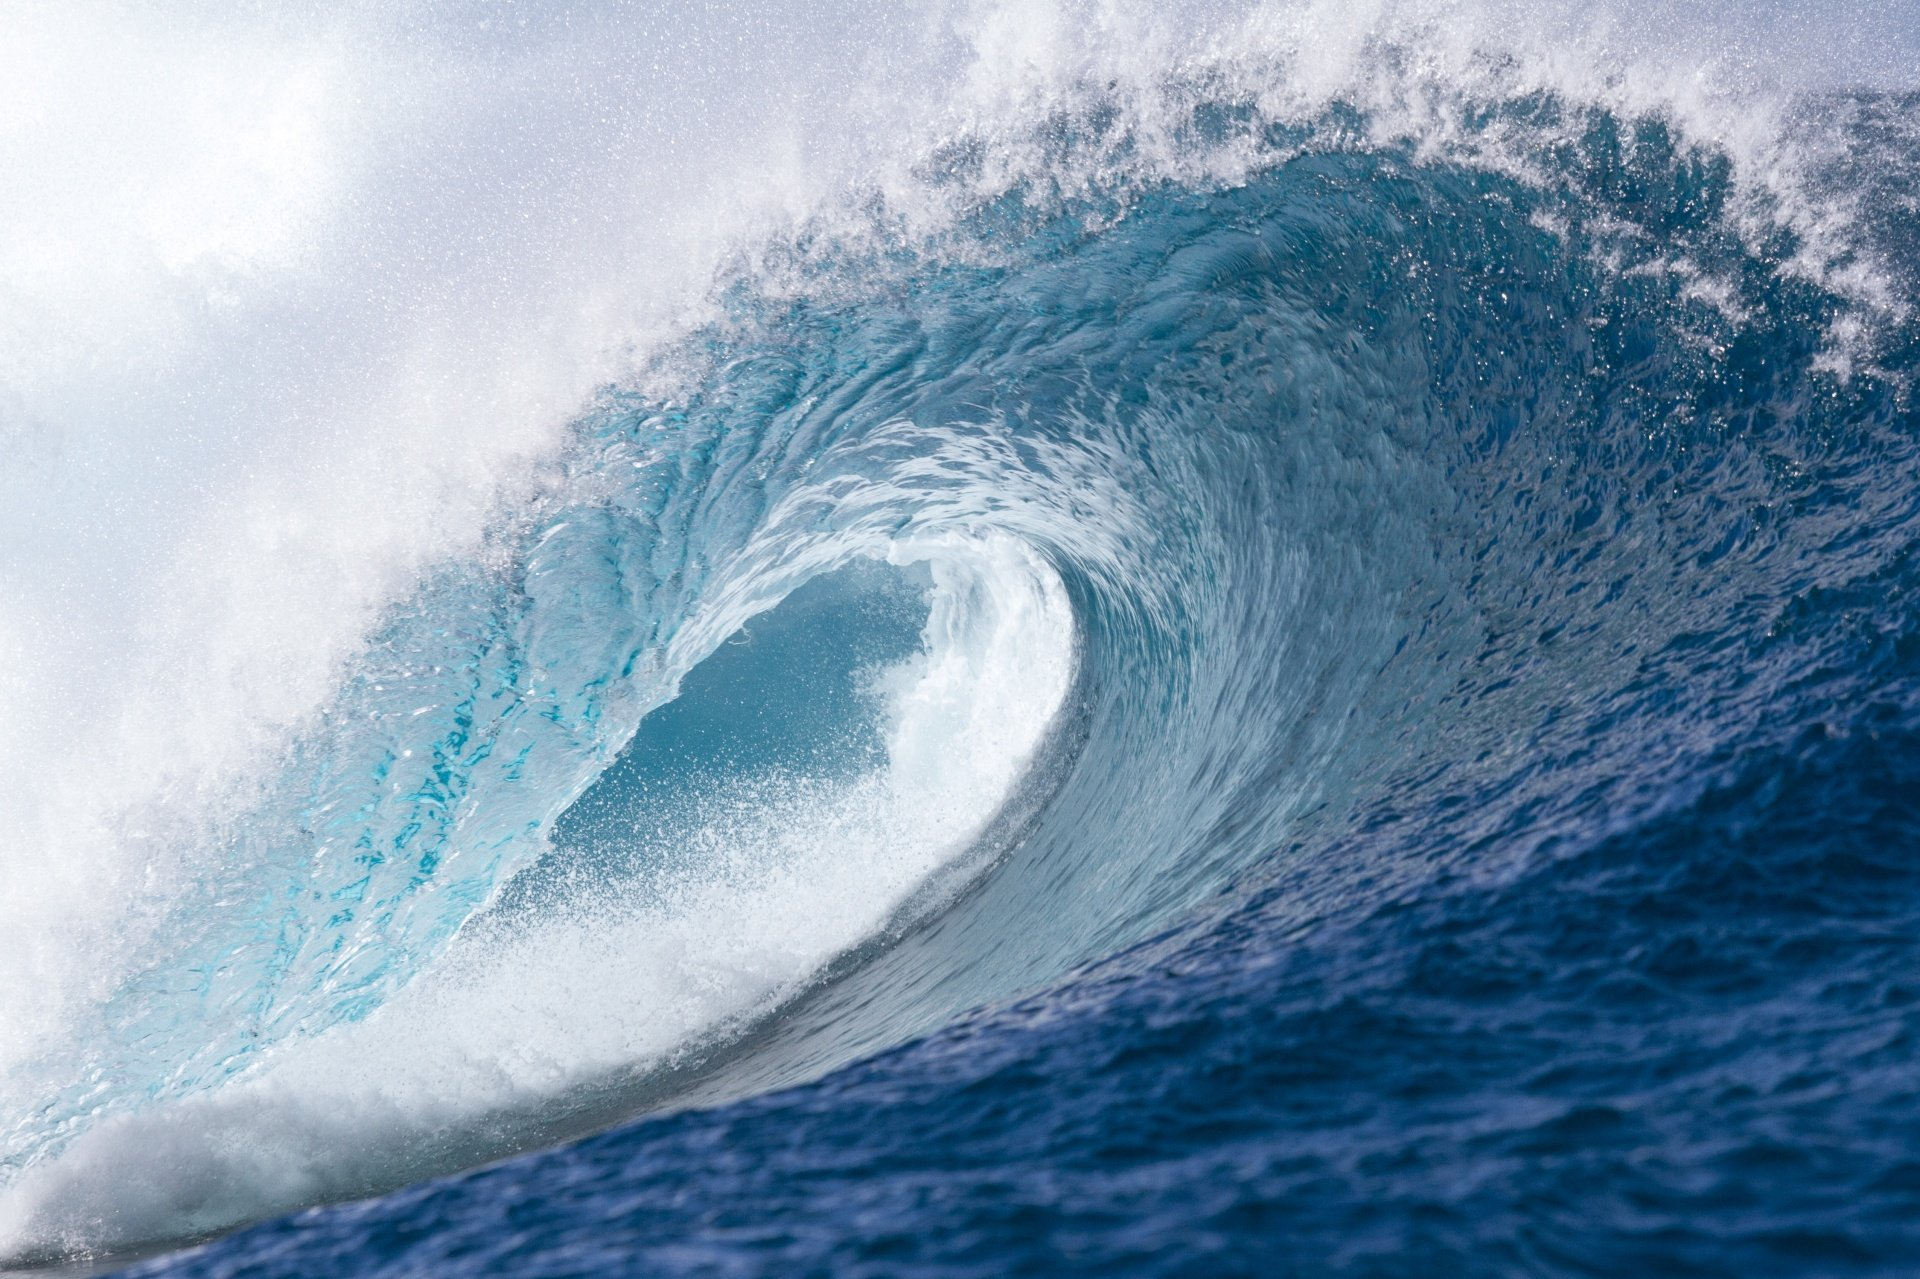 J Trev's photo of Teahupoo